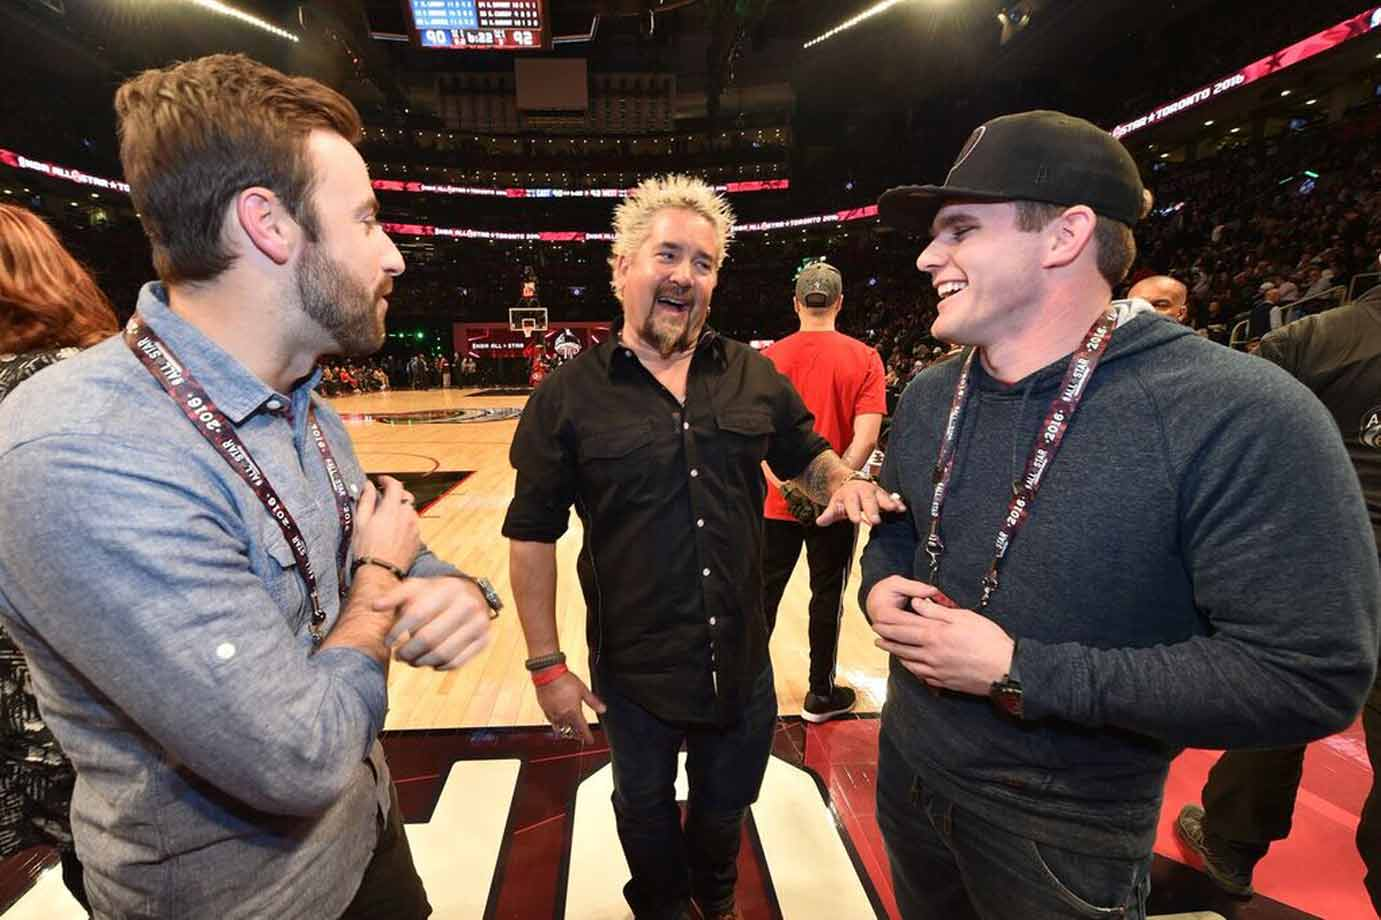 Just three dudes who love racing and basketball!